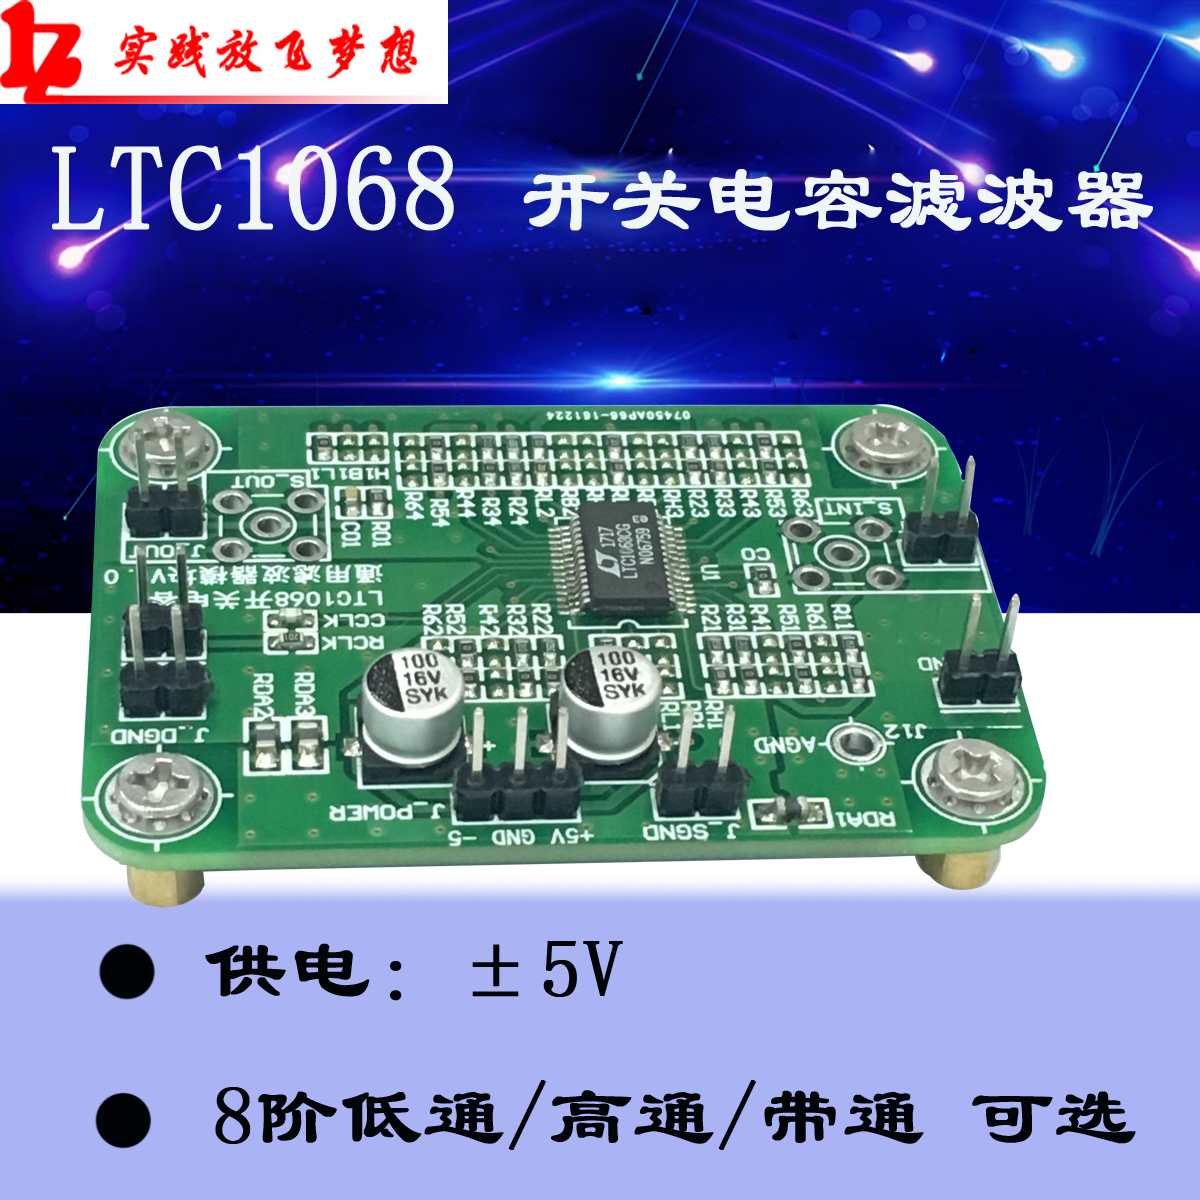 LTC1068 Module, Switched Capacitor Filter, Programmable Filter, Low Pass, High Pass, Band Pass Filter mutua madrid open pass page 6